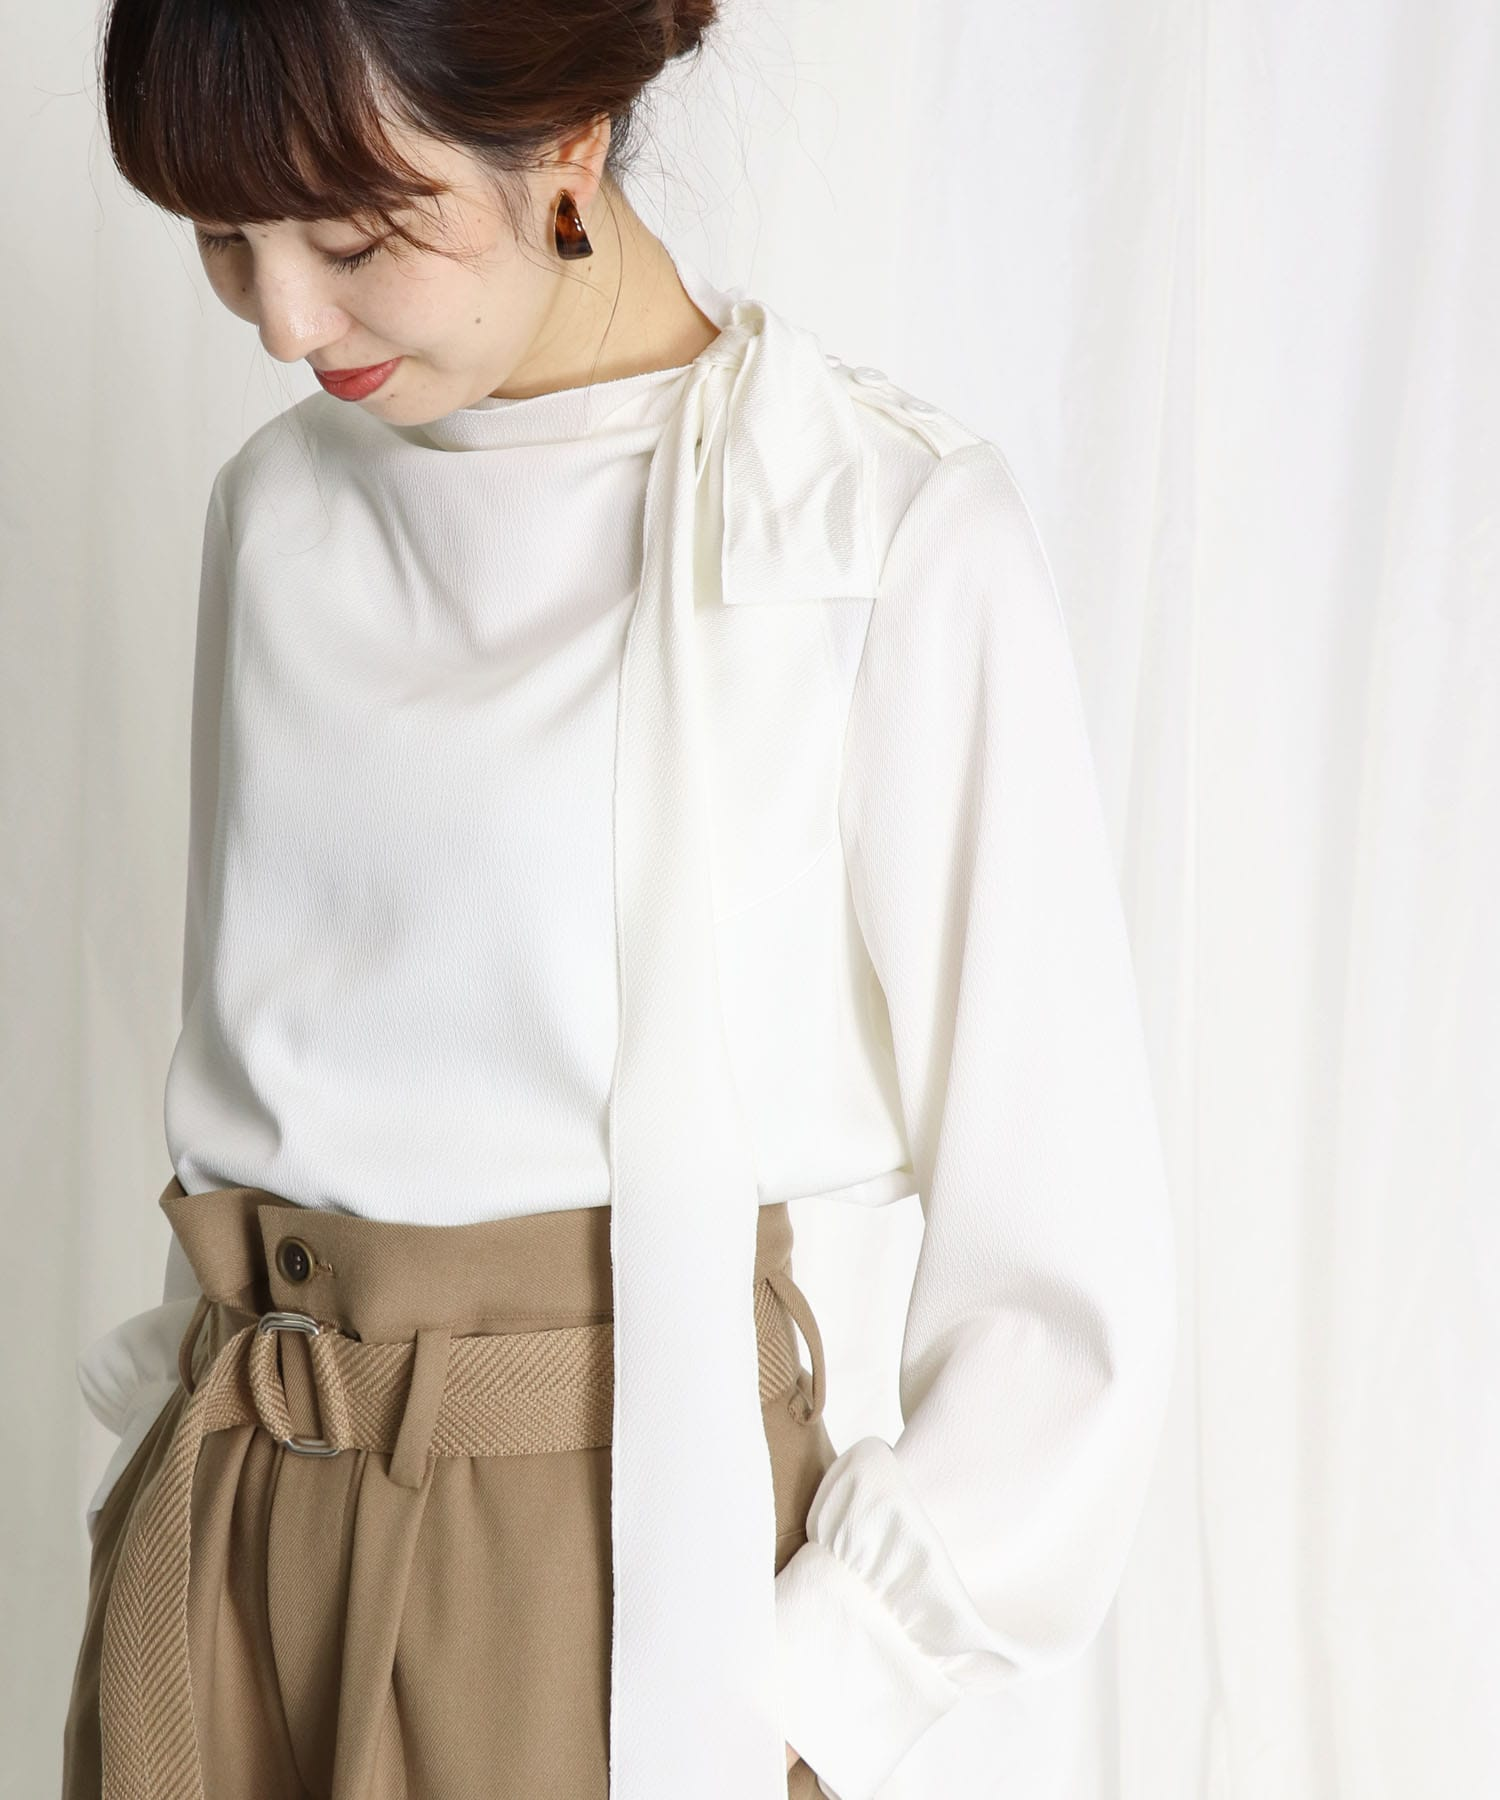 wrinkle bow tie blouse